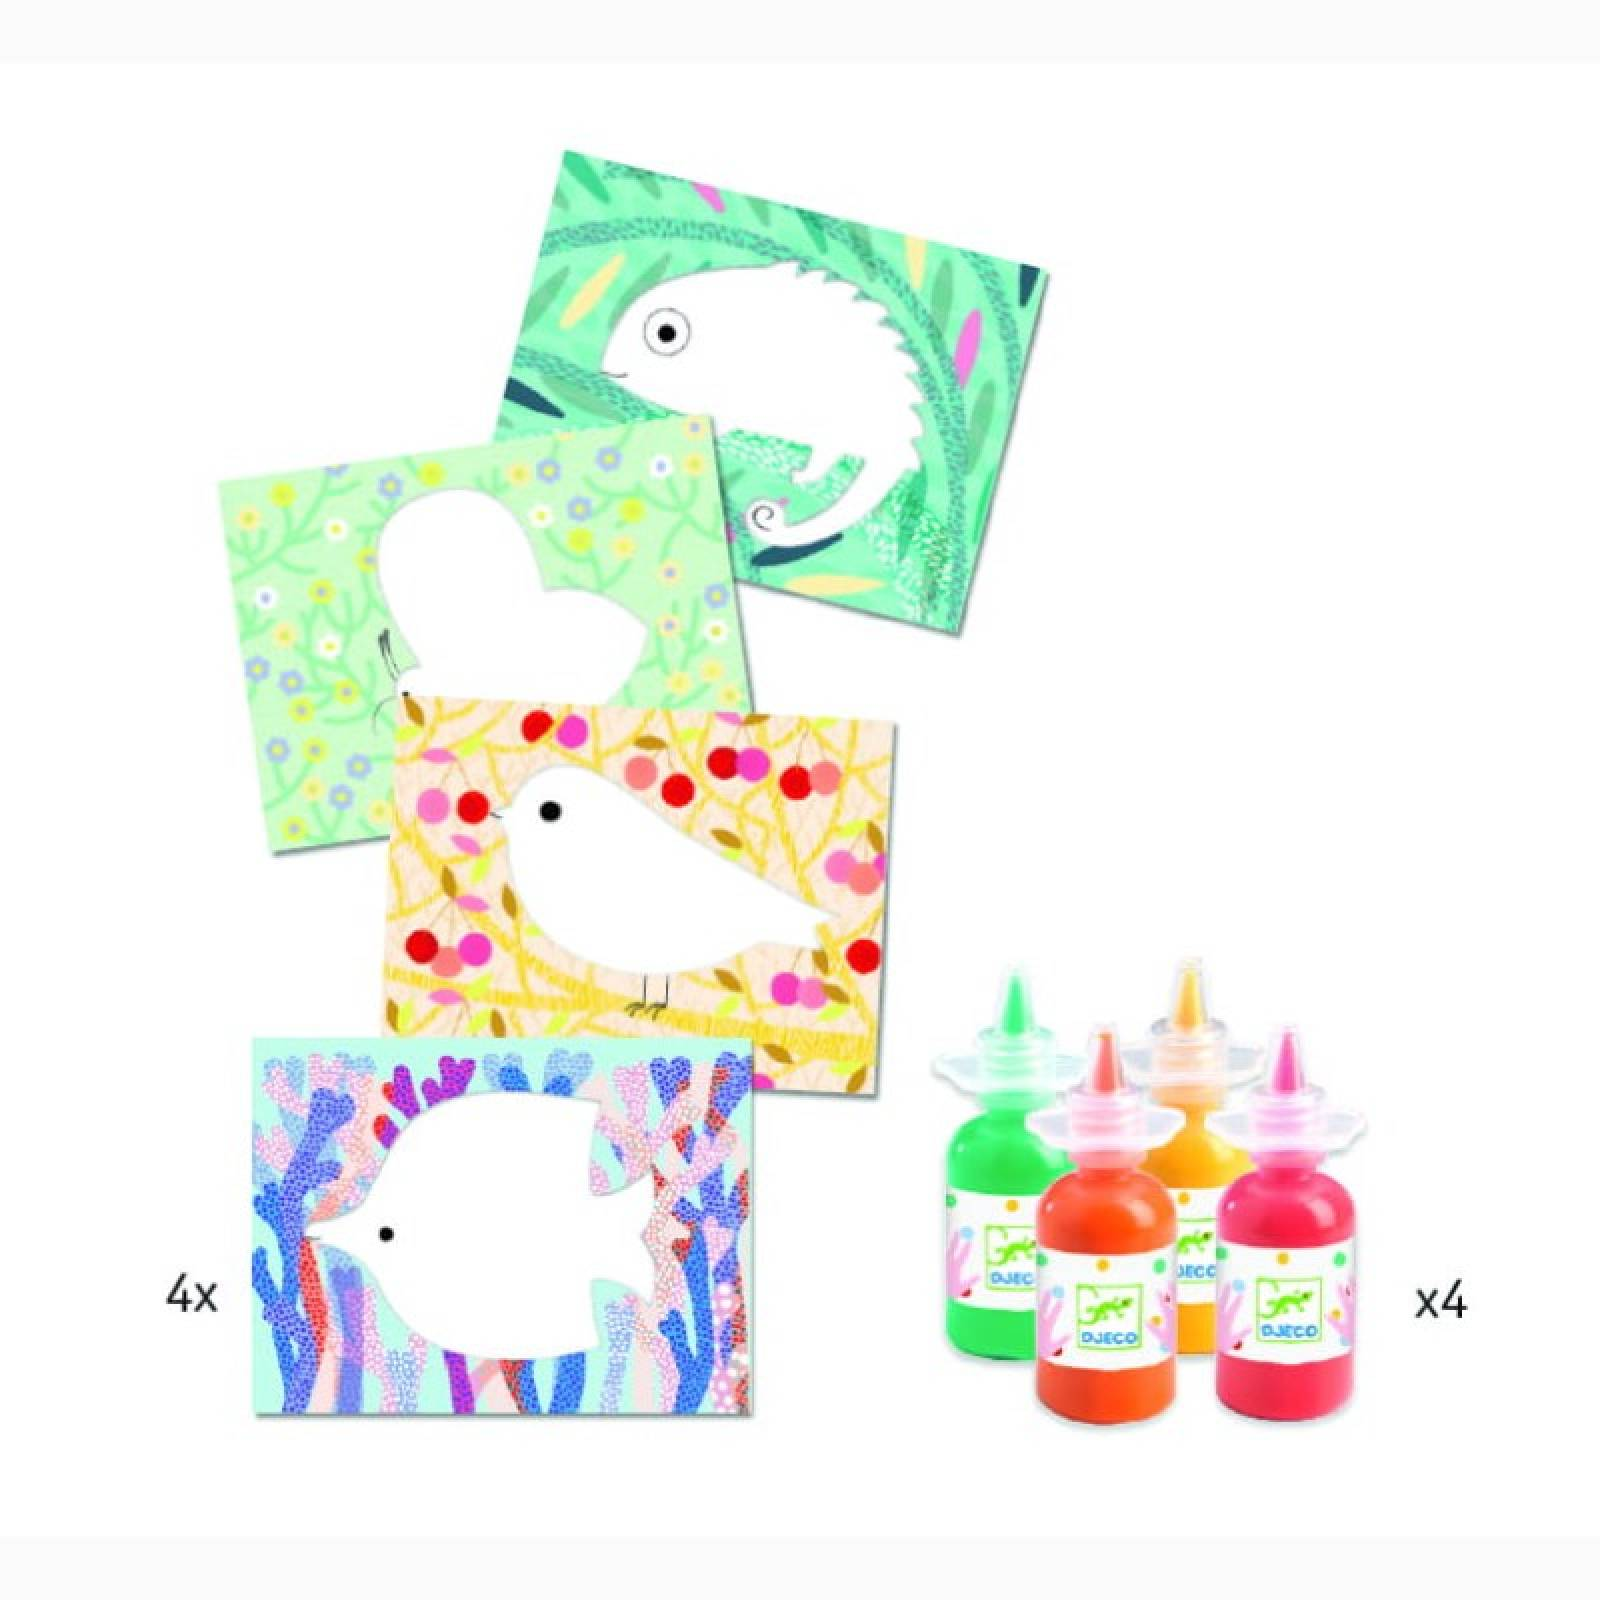 Squirt & Spread Easy Clean Painting Set By Djeco 18m+ thumbnails